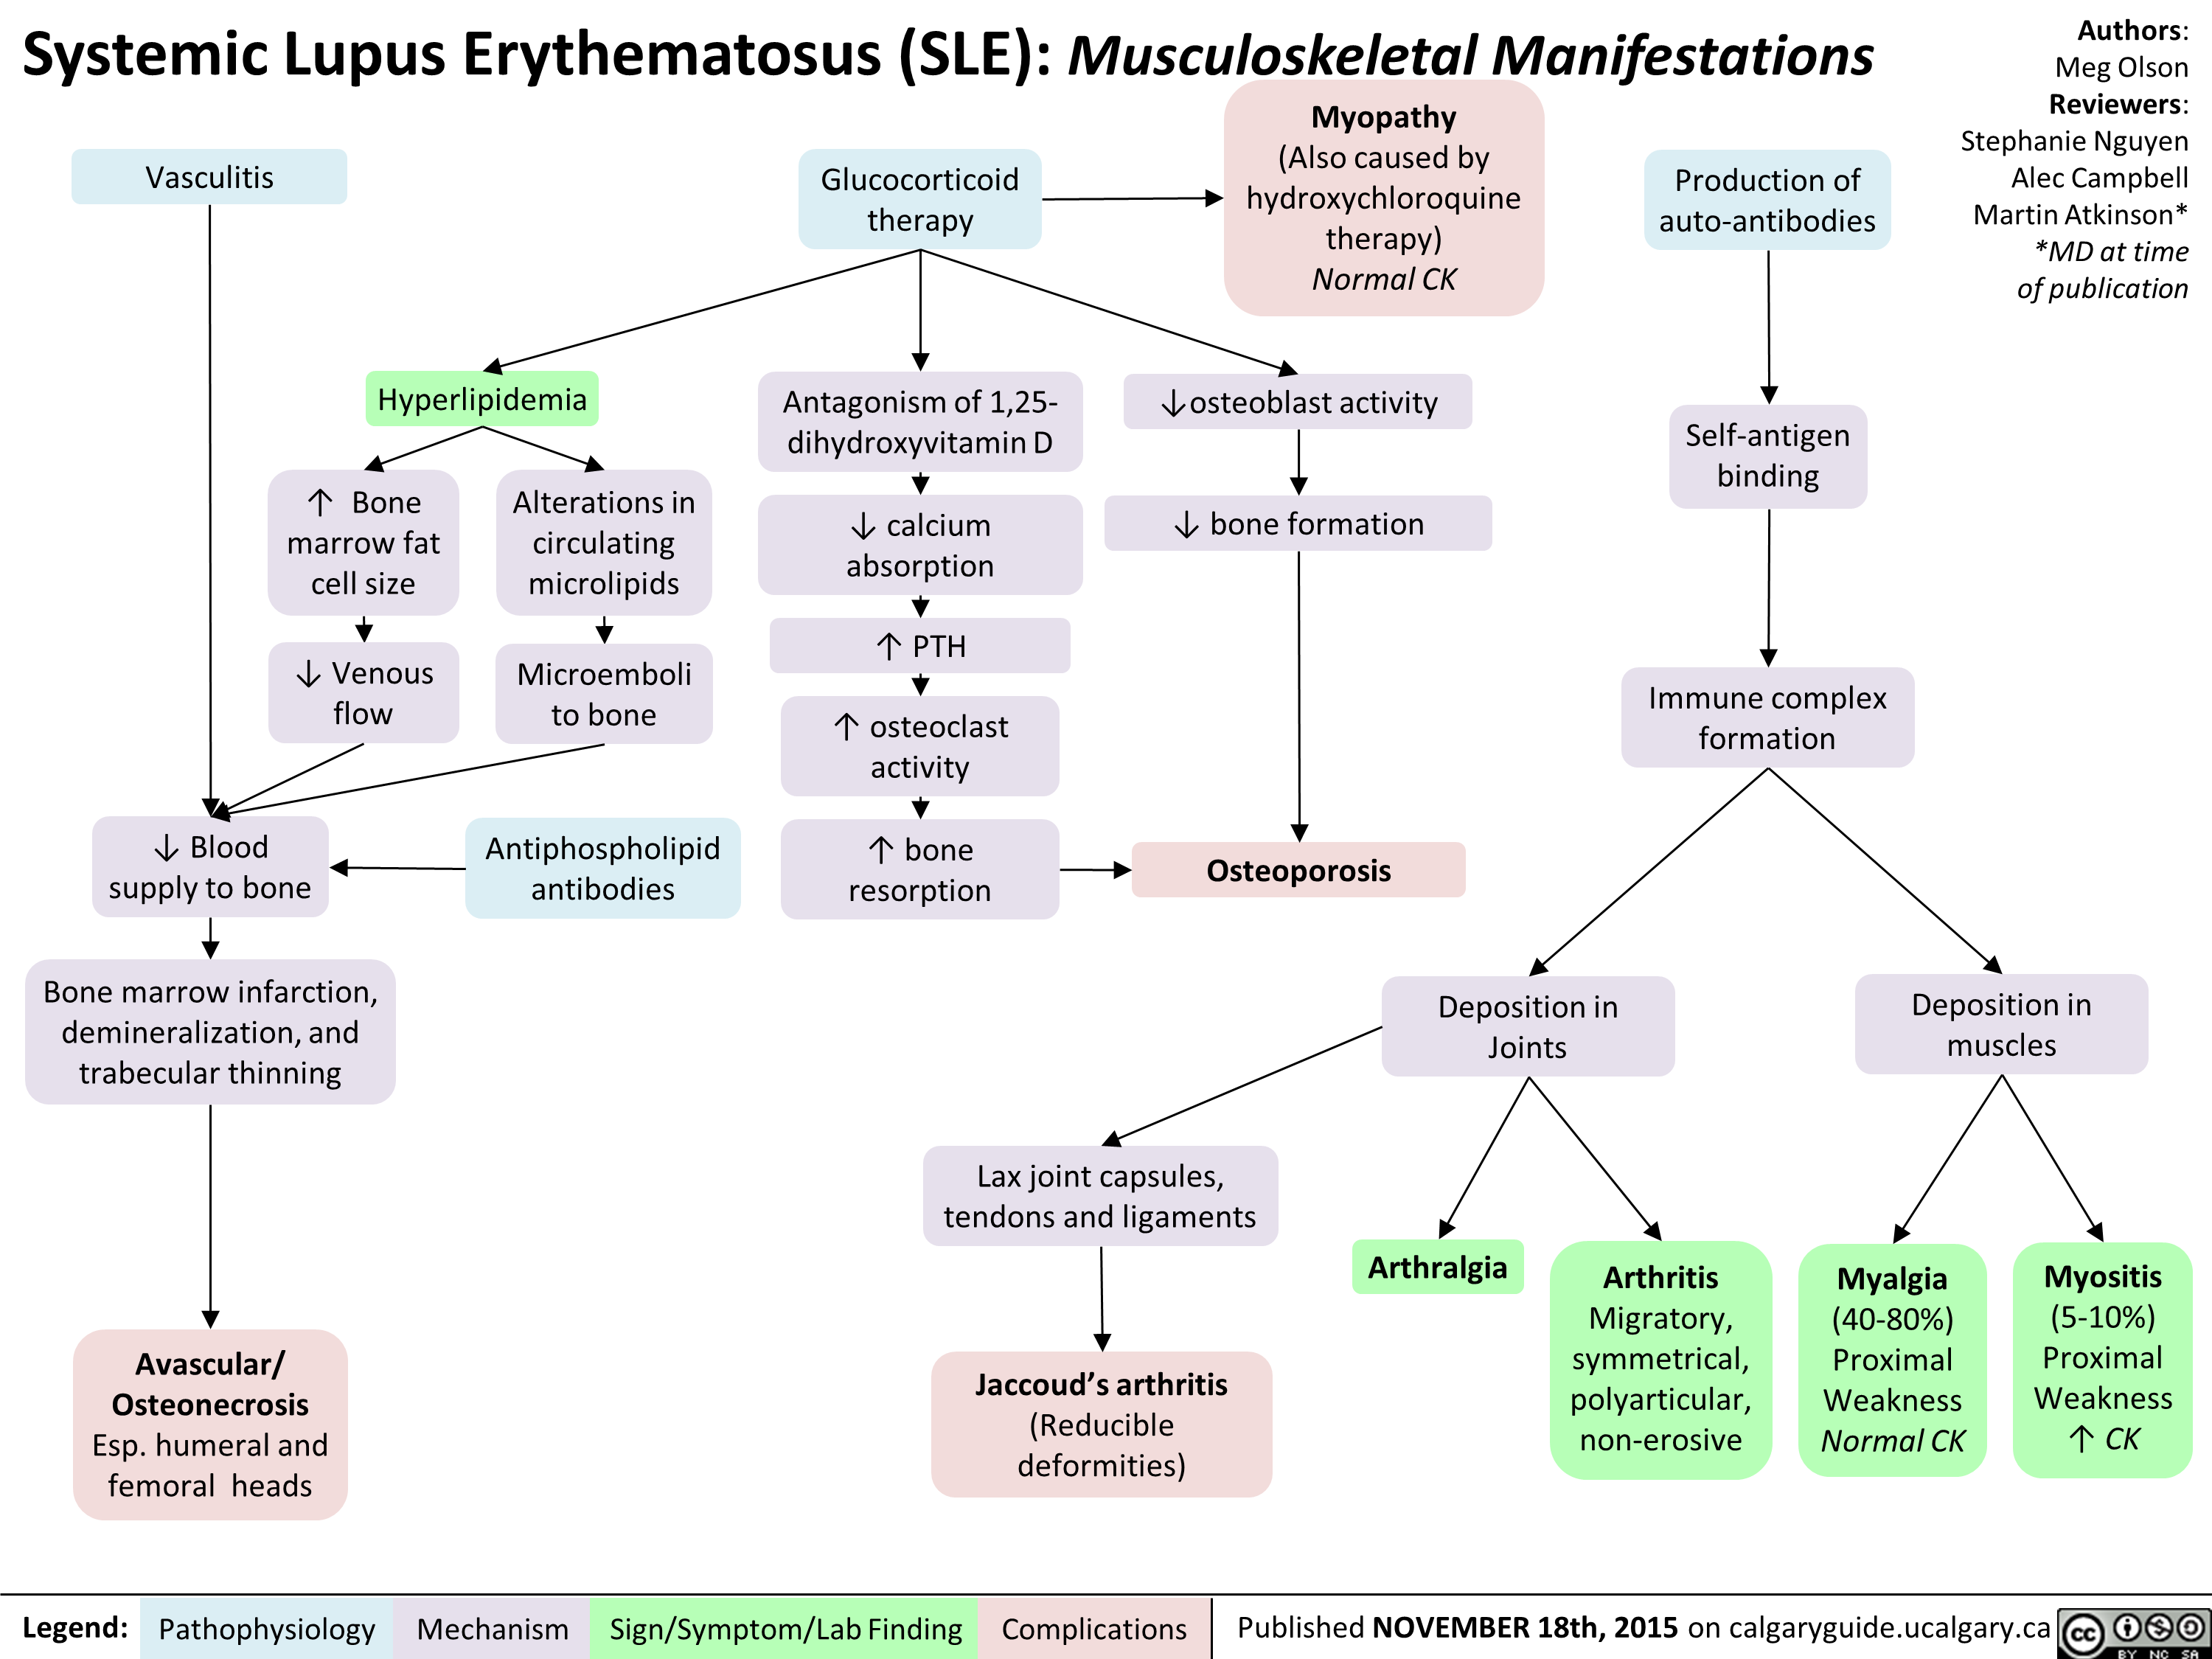 Systemic Lupus Erythematosis SLE Musculoskeletal Manifestations